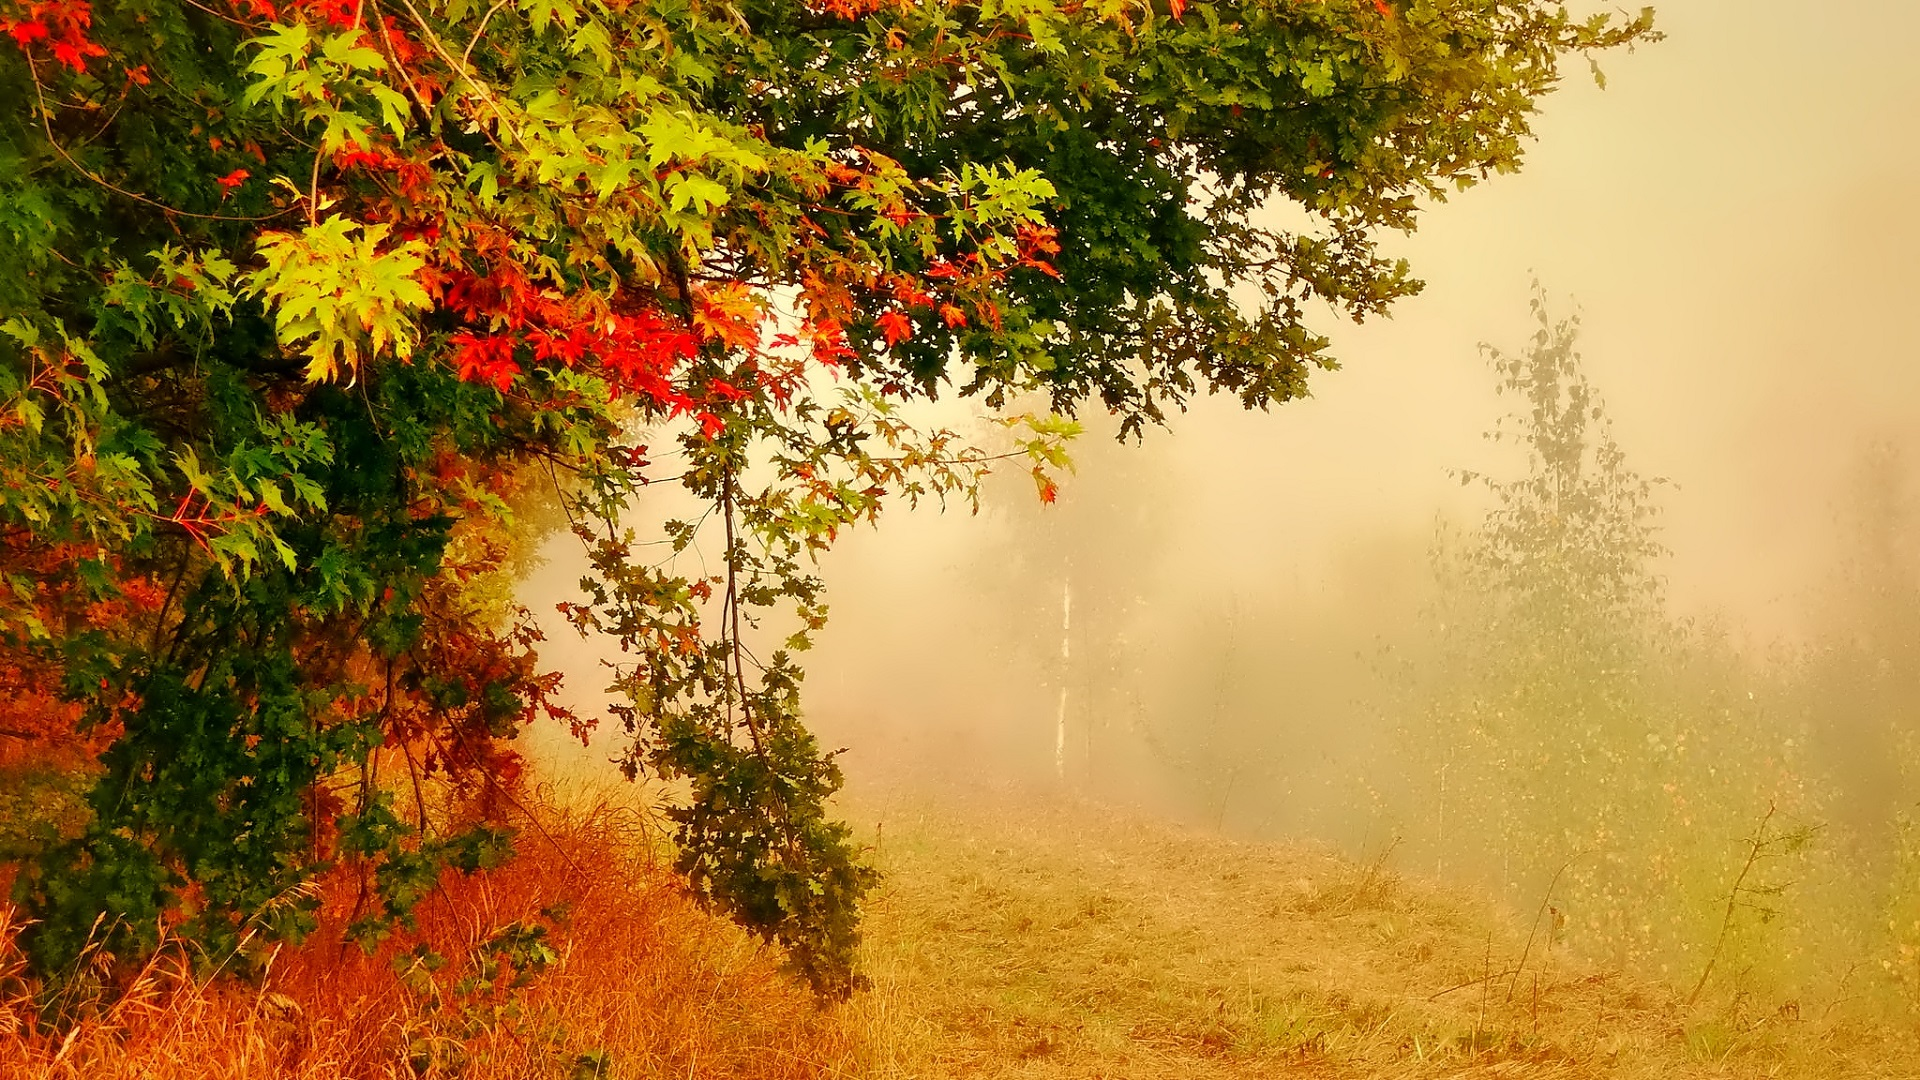 Free Fall Mums Wallpaper Tree In Foggy Autumn Forest Hd Wallpaper Background